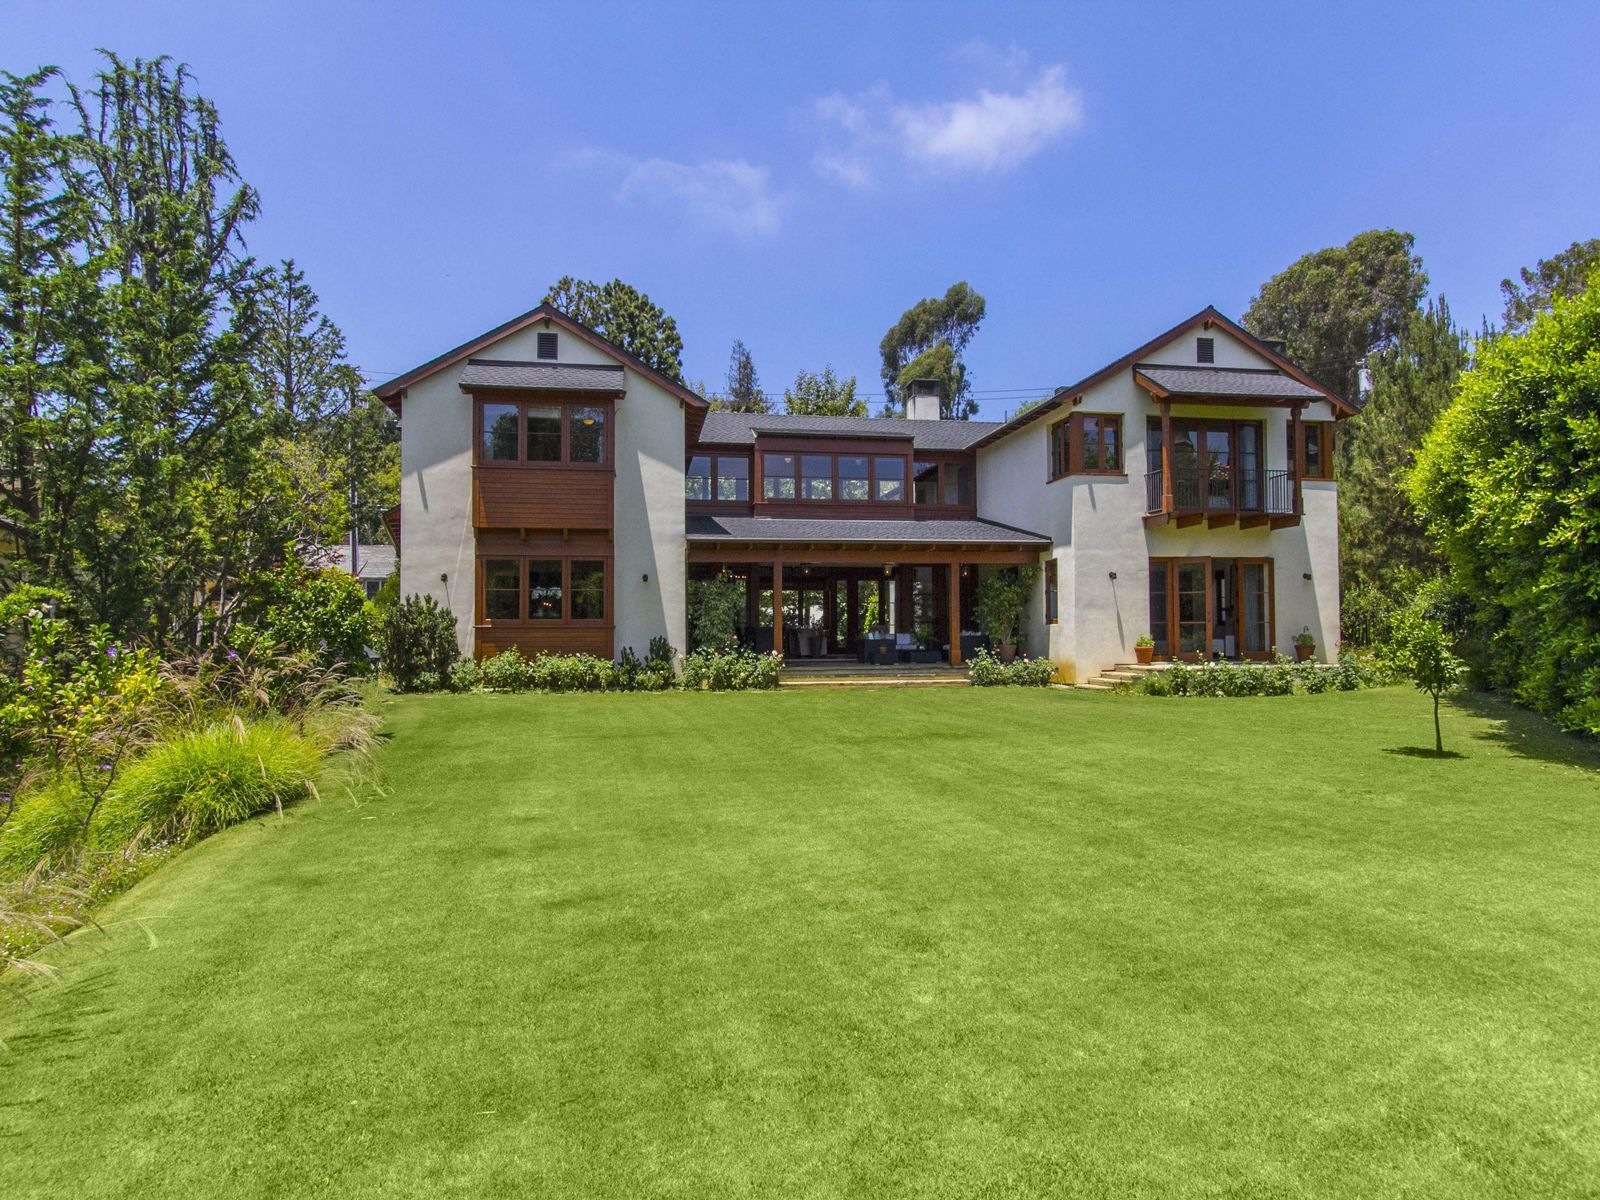 Monterey Colonial Home, Pacific Palisades CA Single Family Home - Los Angeles Real Estate